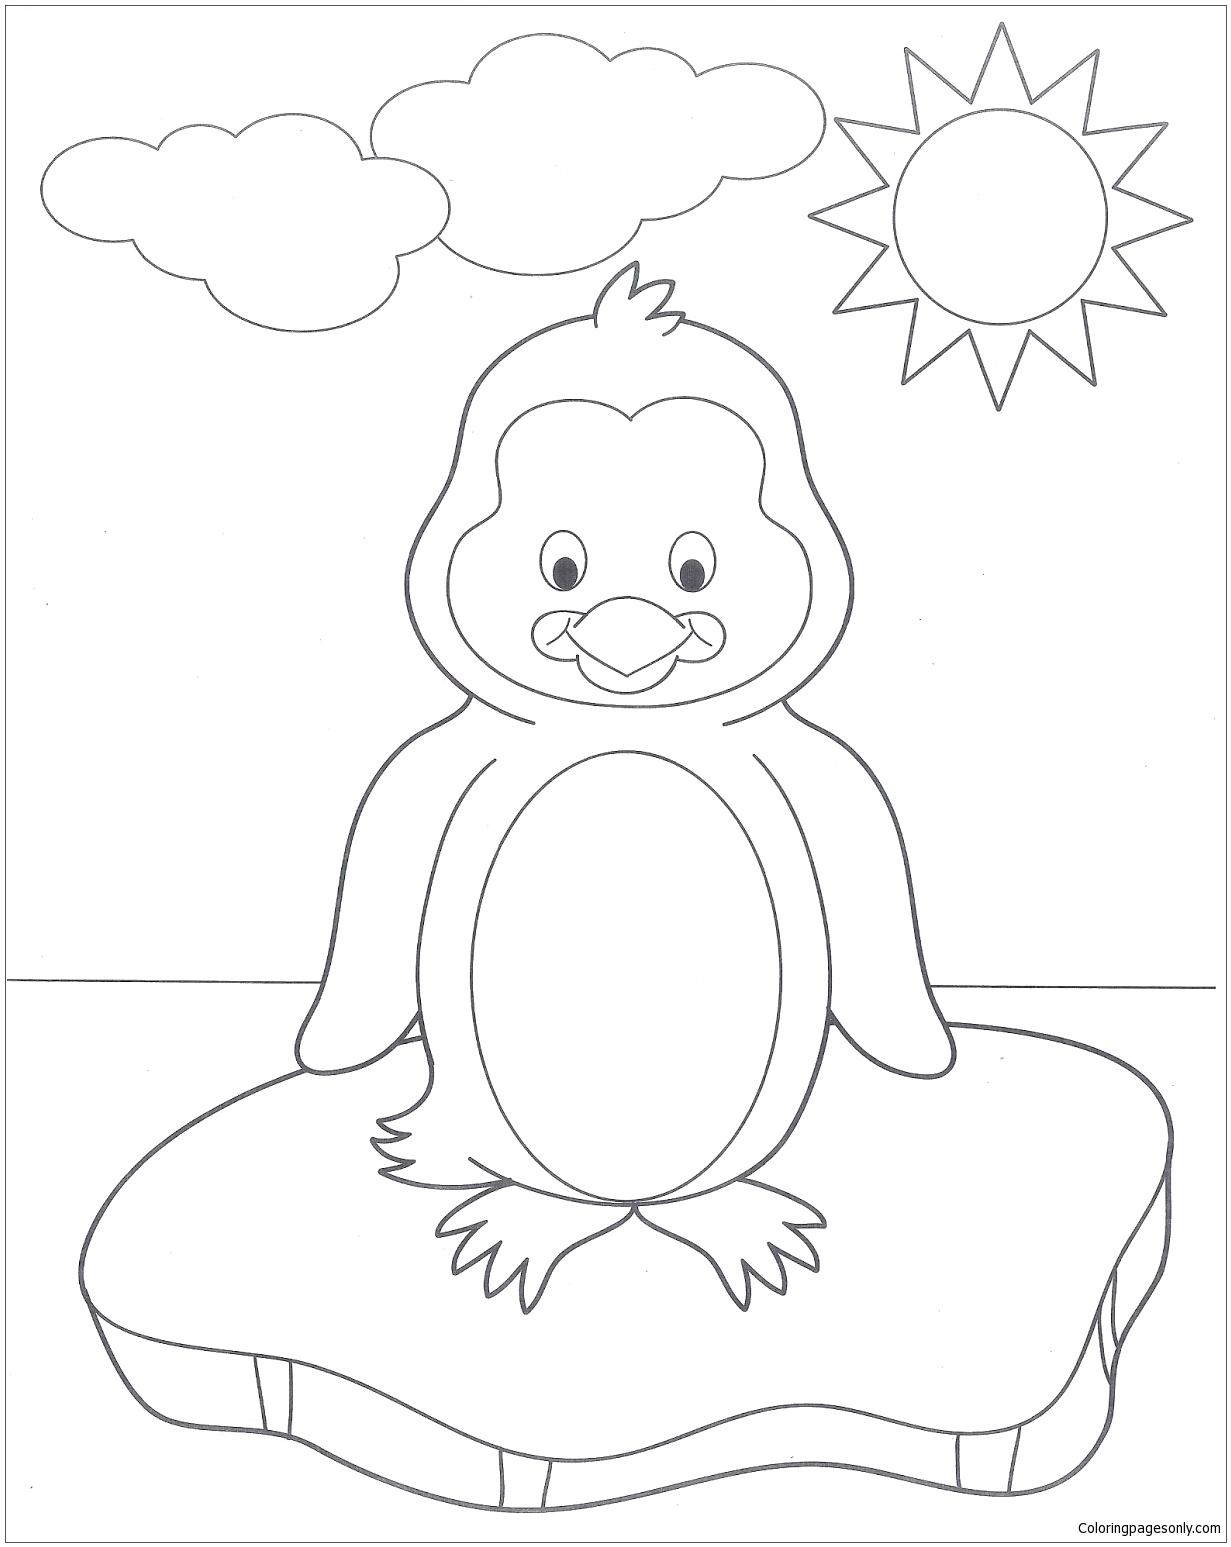 A Very Cute Baby Penguin In Winter Coloring Page - Free ...